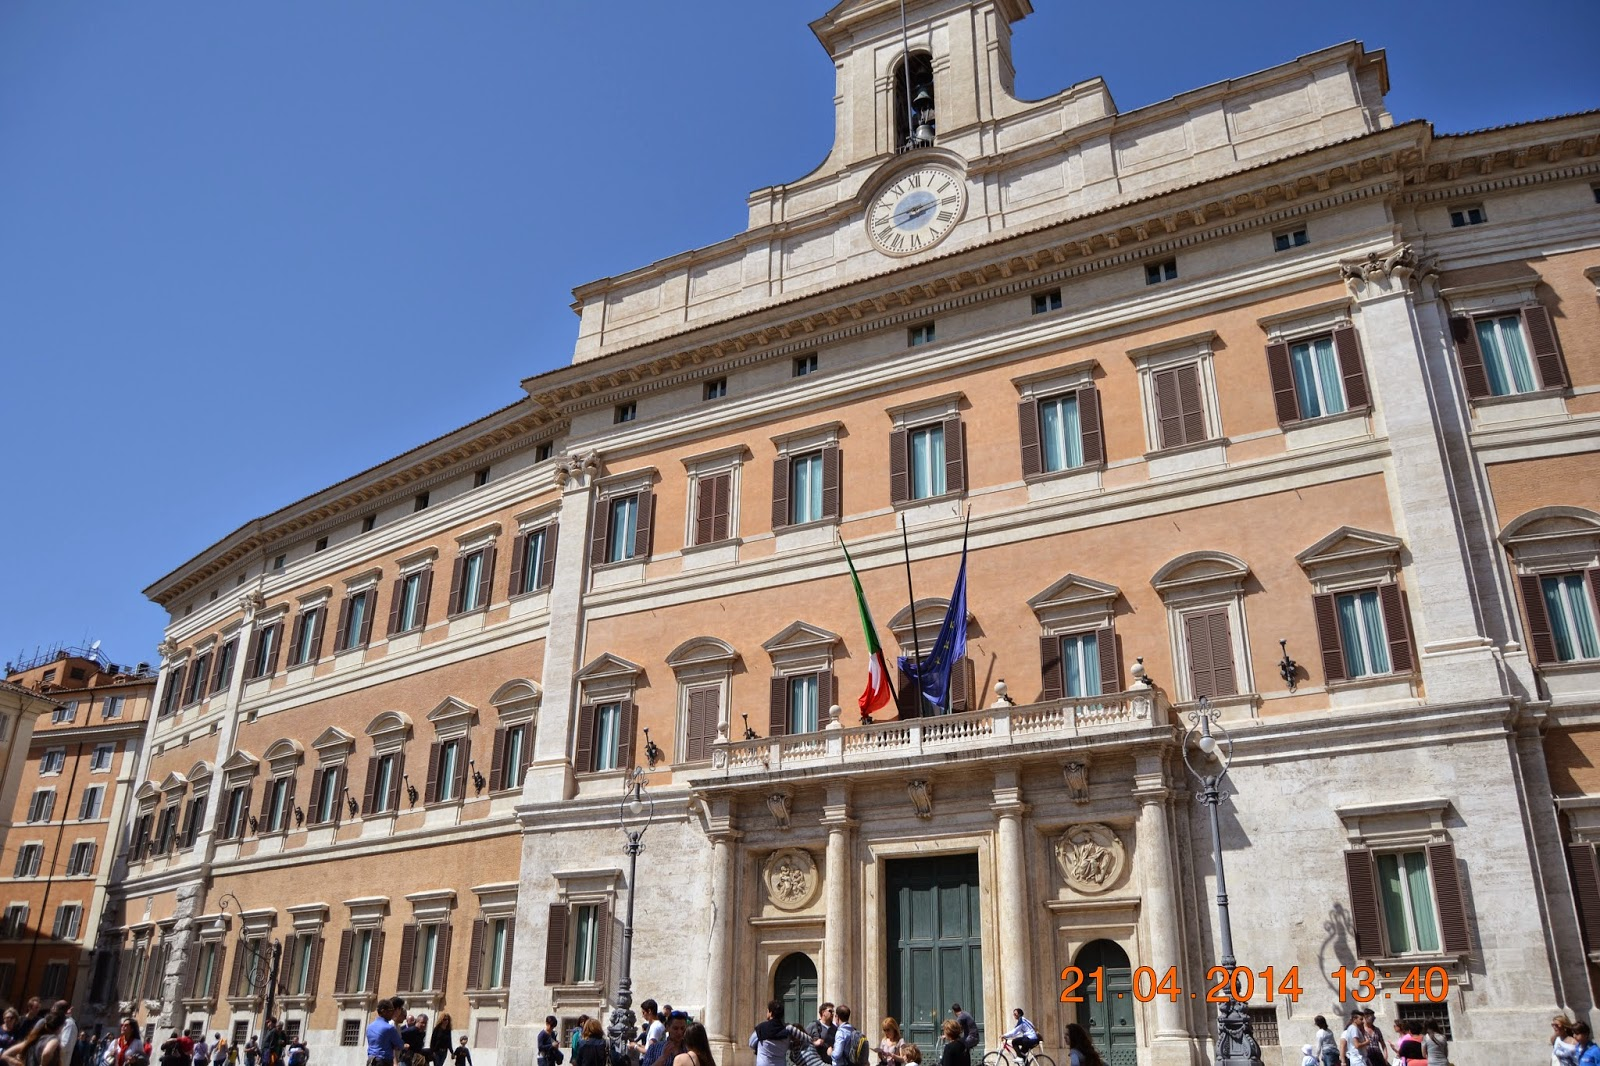 Parliament of Italy, Rome